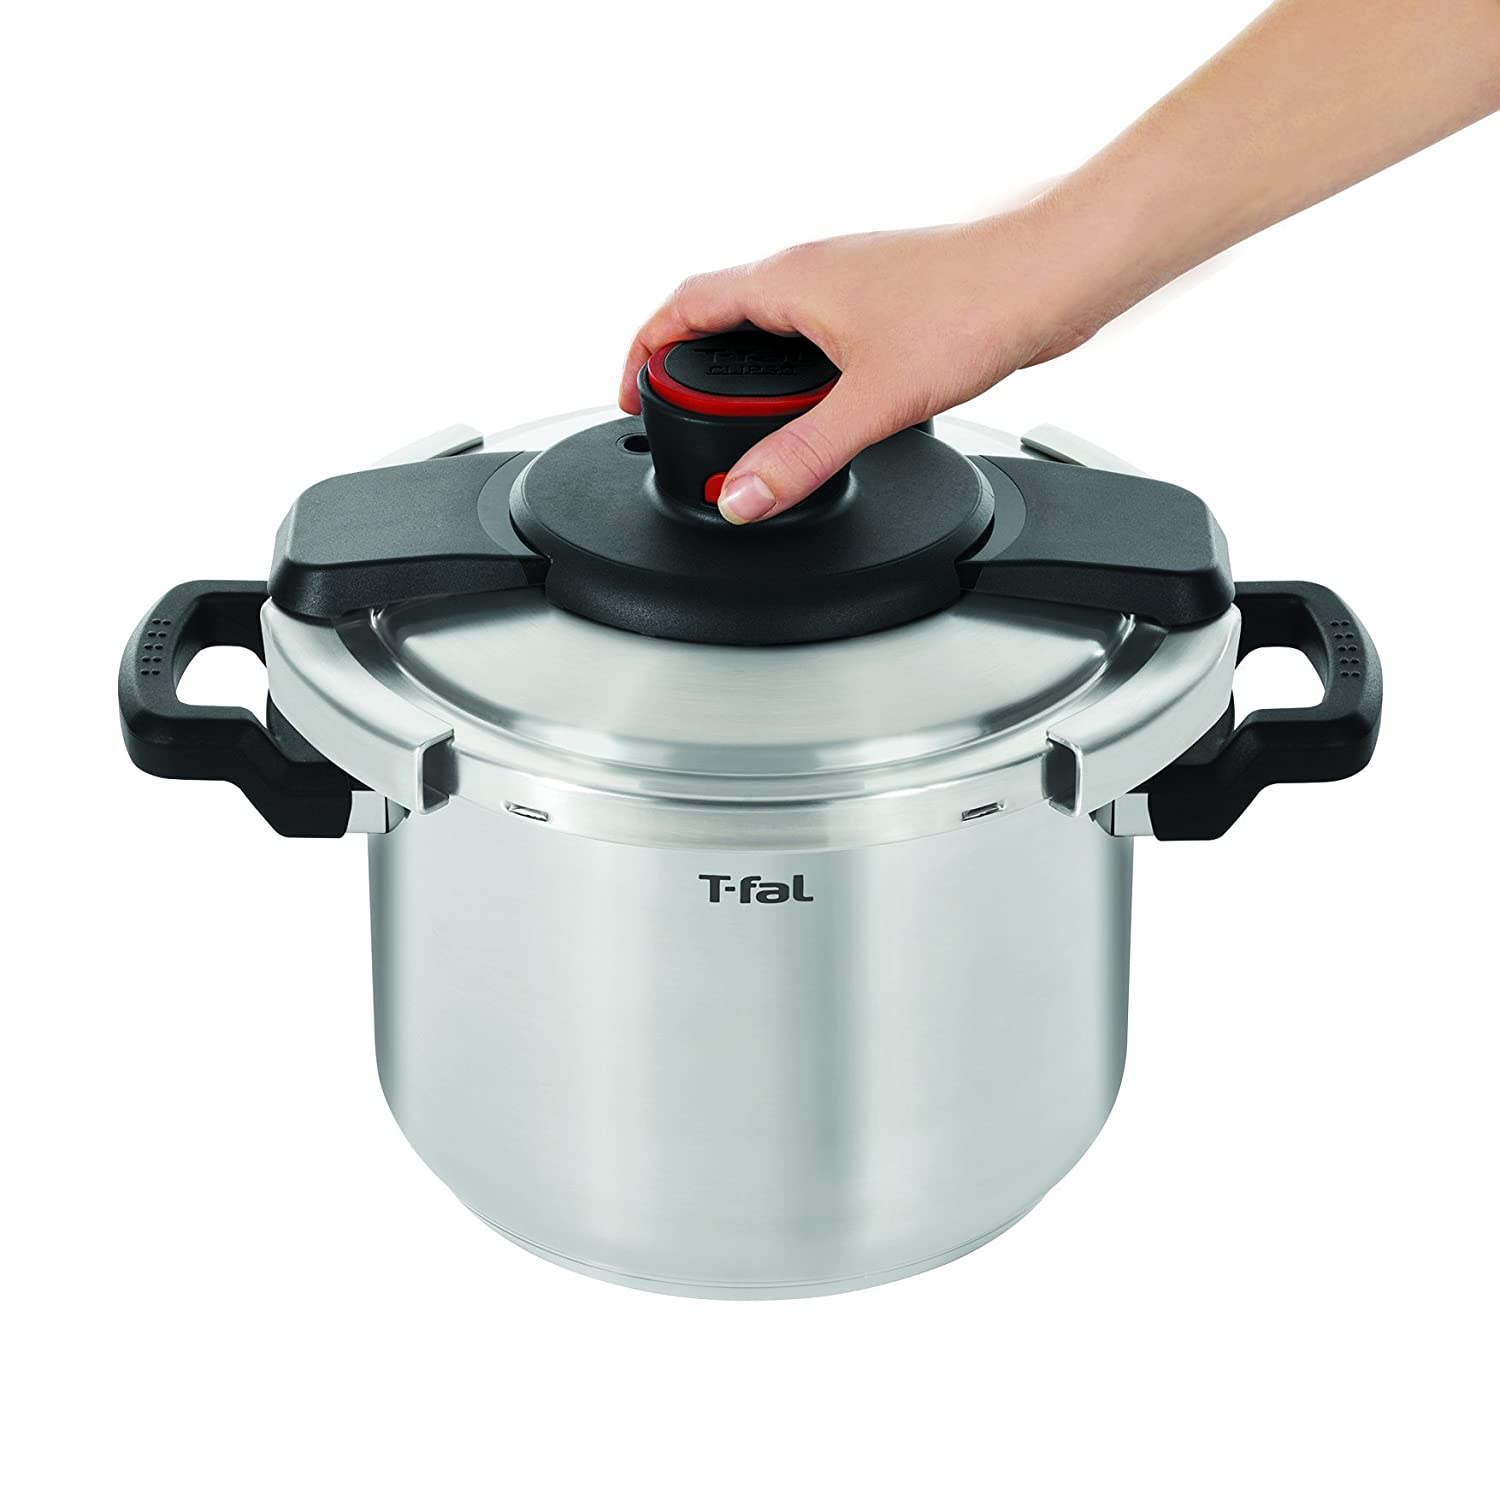 t fal p45007 clipso stainless steel pressure cooker 6 3 quart new free shipp ebay. Black Bedroom Furniture Sets. Home Design Ideas